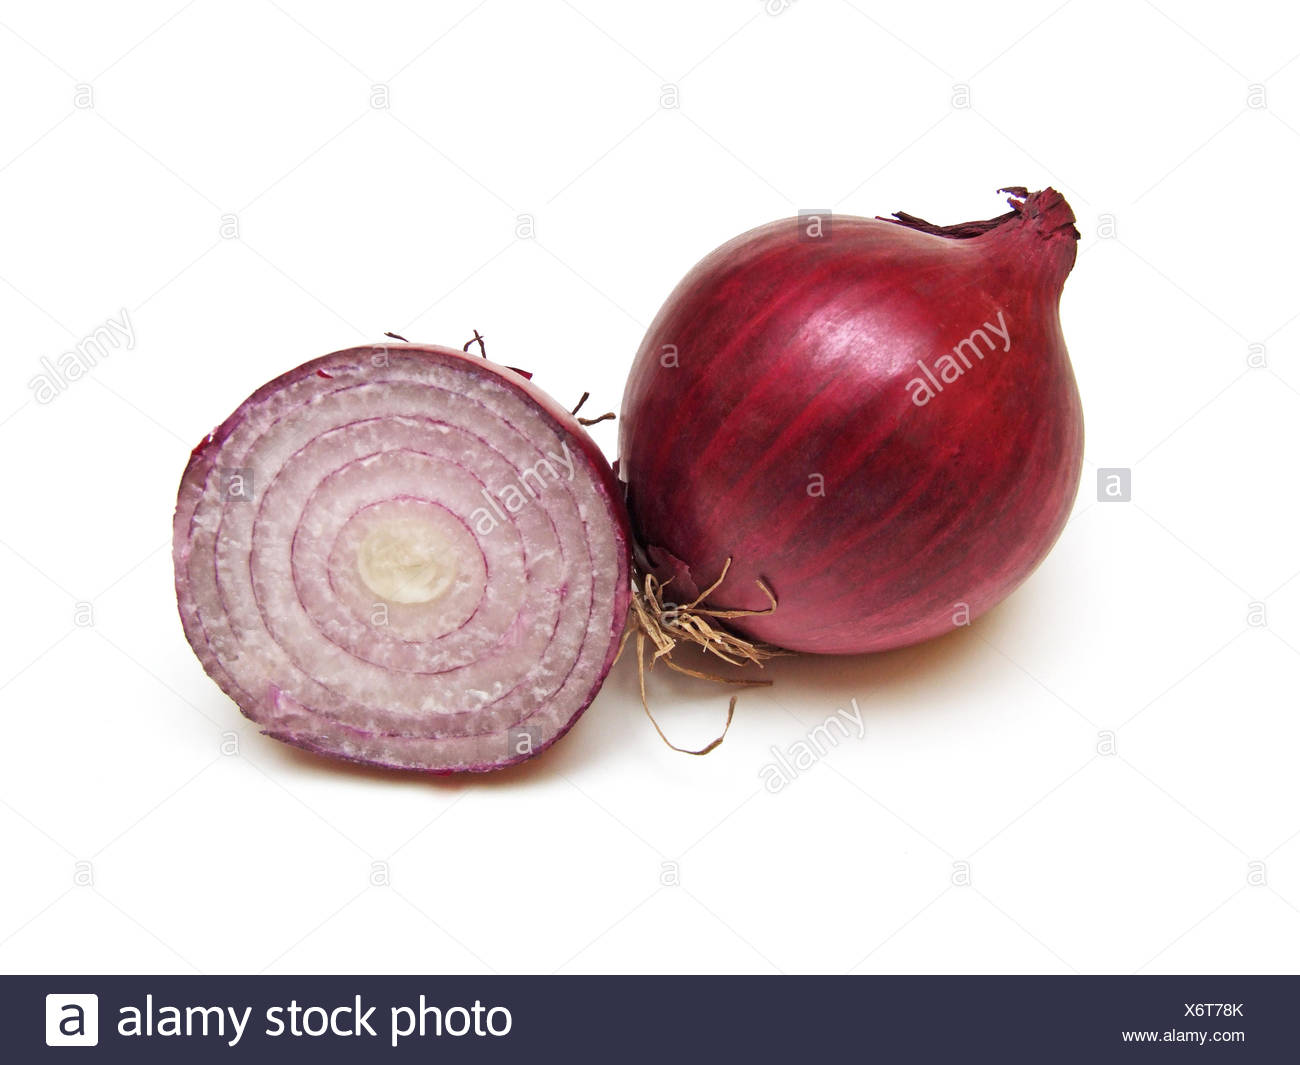 purple onion (Allium cepa) - Stock Image